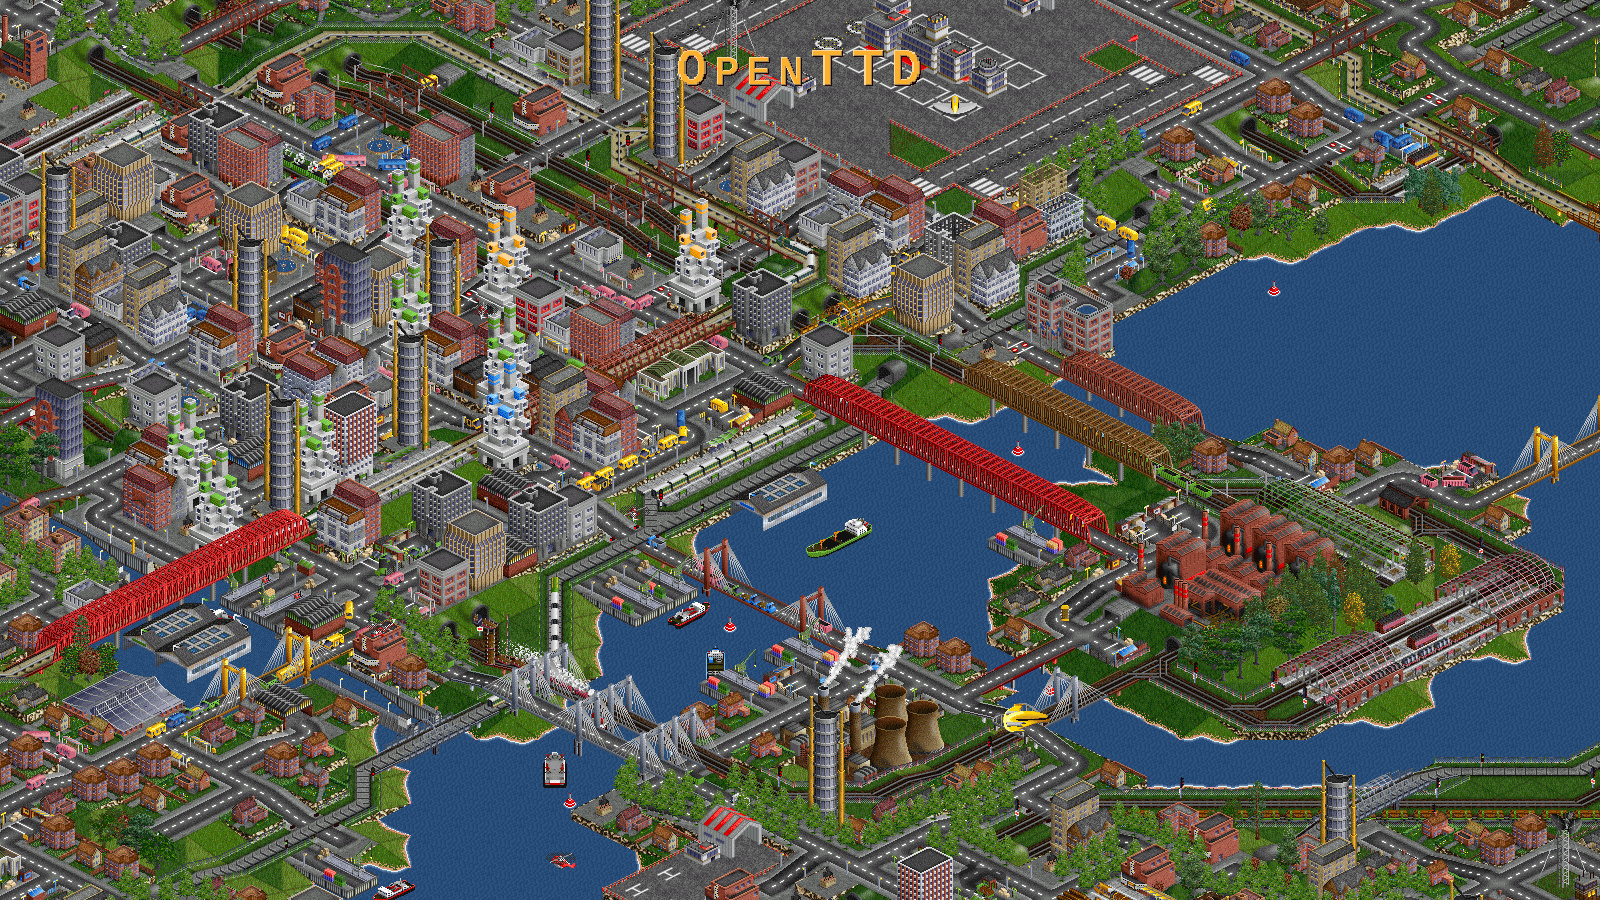 Openttd lutris submit screenshot gumiabroncs Image collections